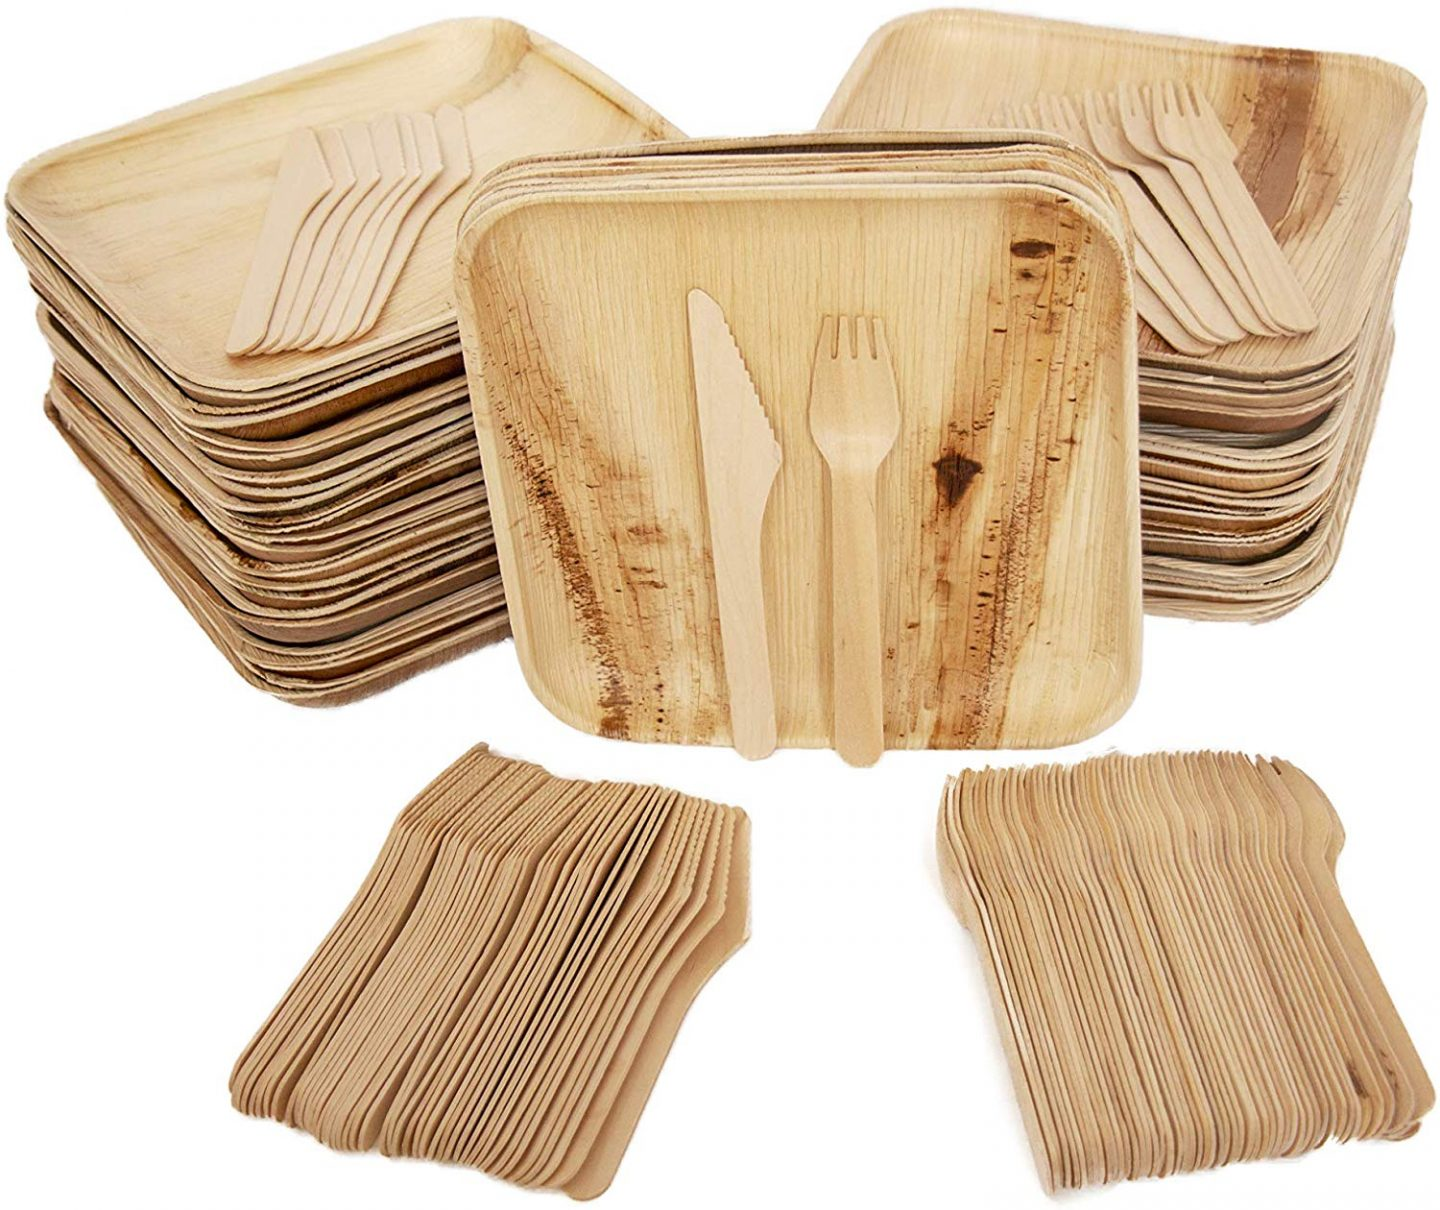 bamboo plates and forks